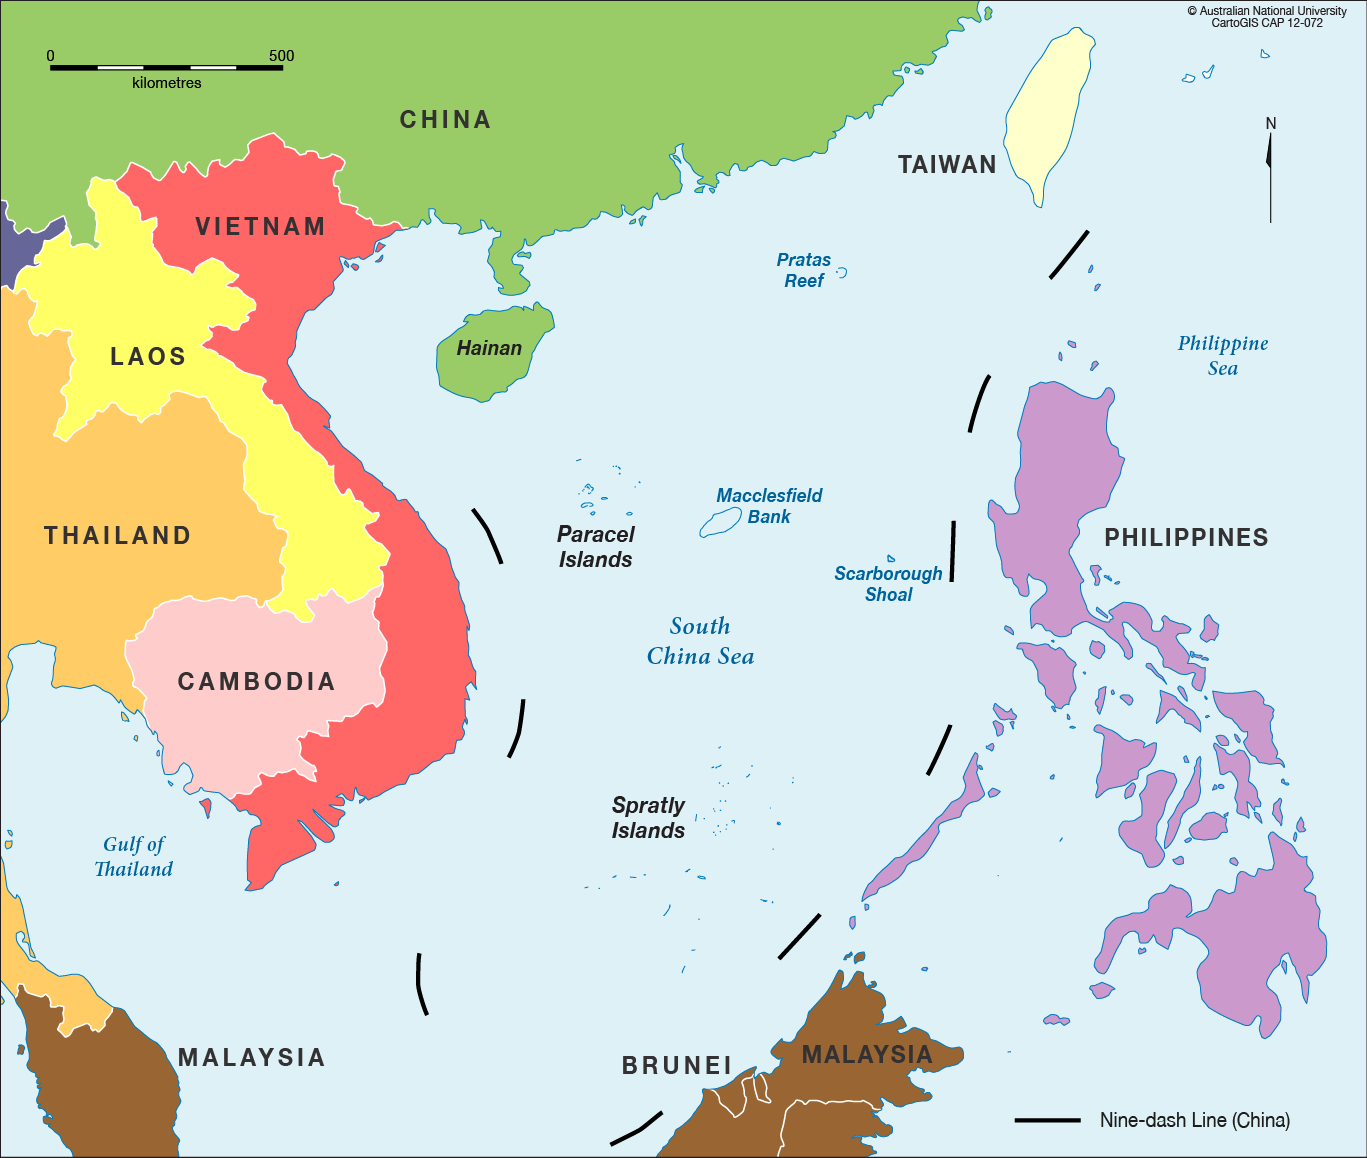 China Sea Map South China Sea in colour   CartoGIS Services Maps Online   ANU